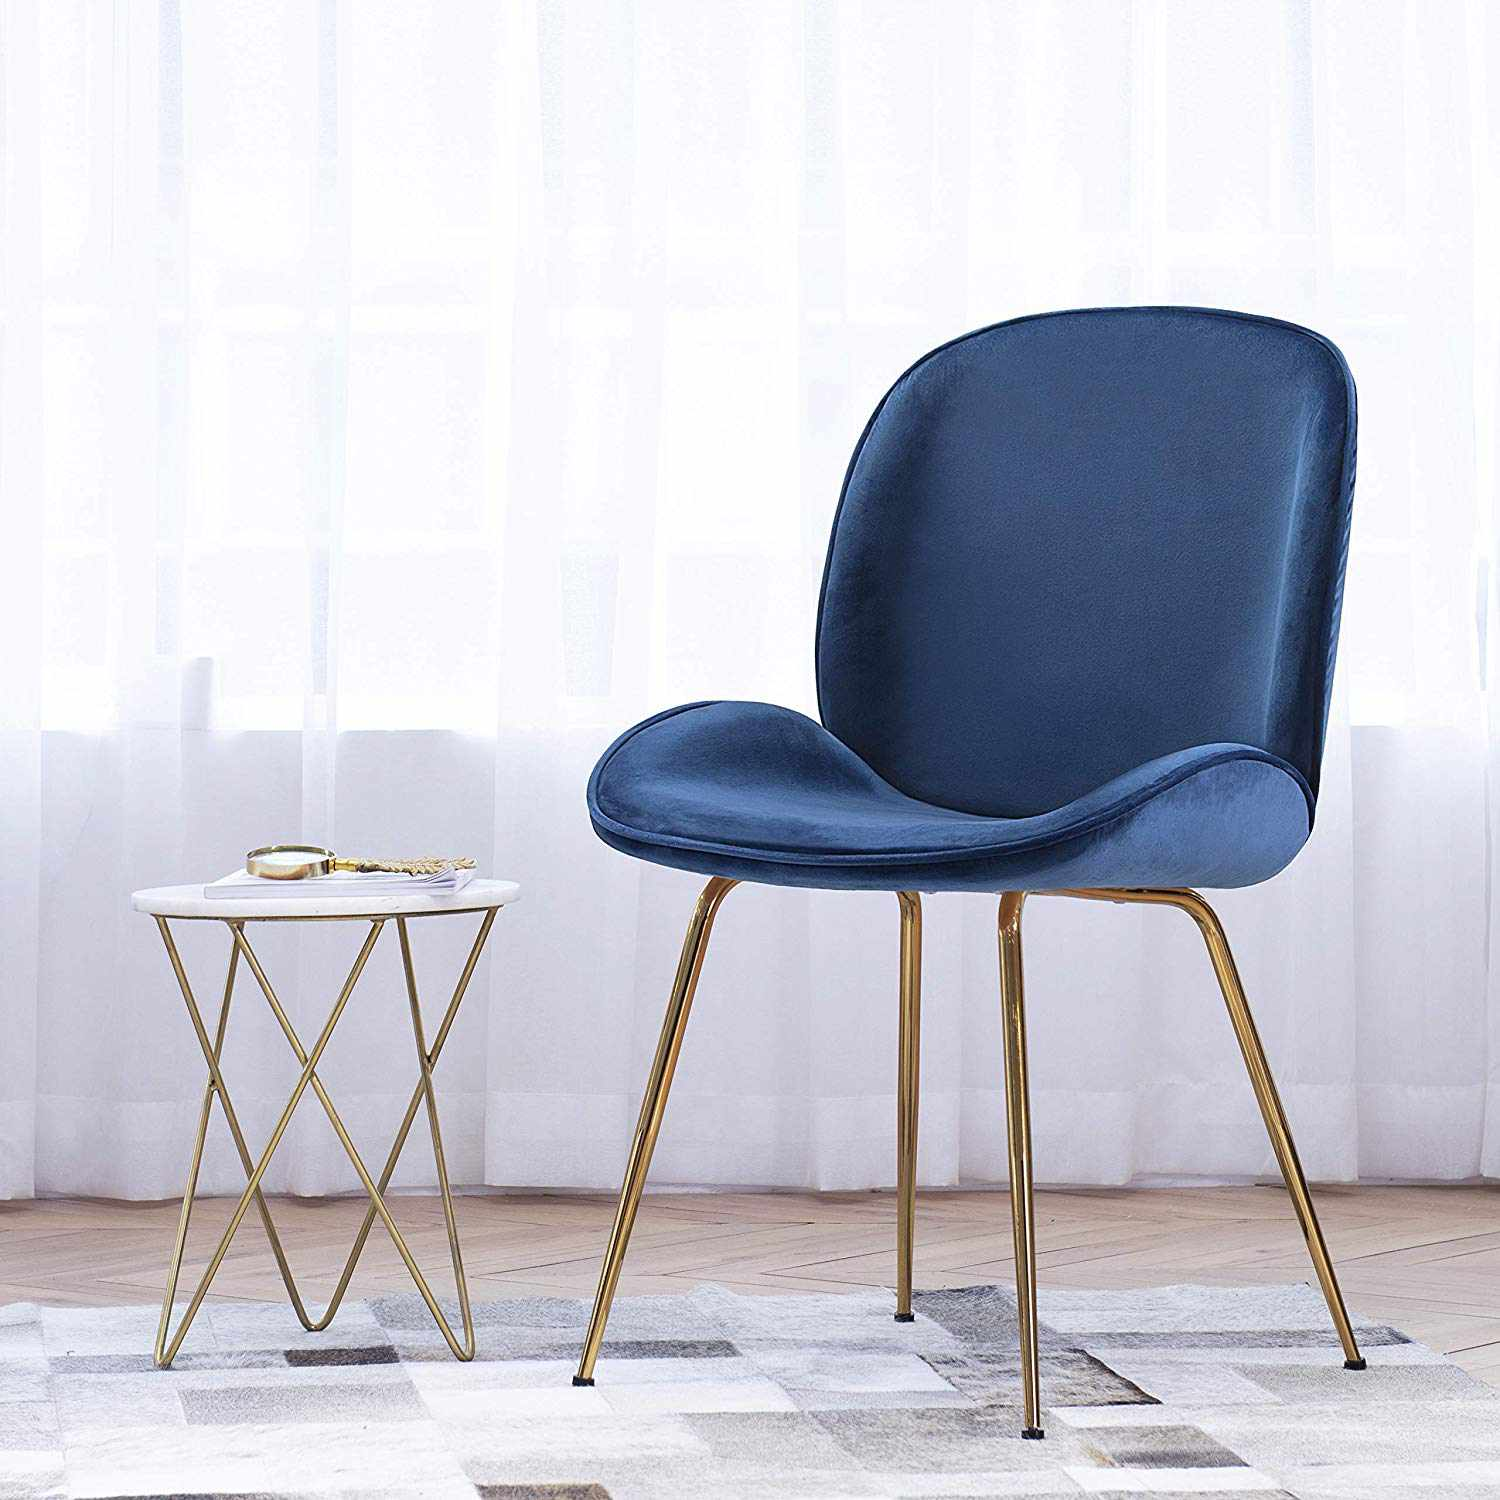 Velvet midcentury style blue chair with gold metal legs.